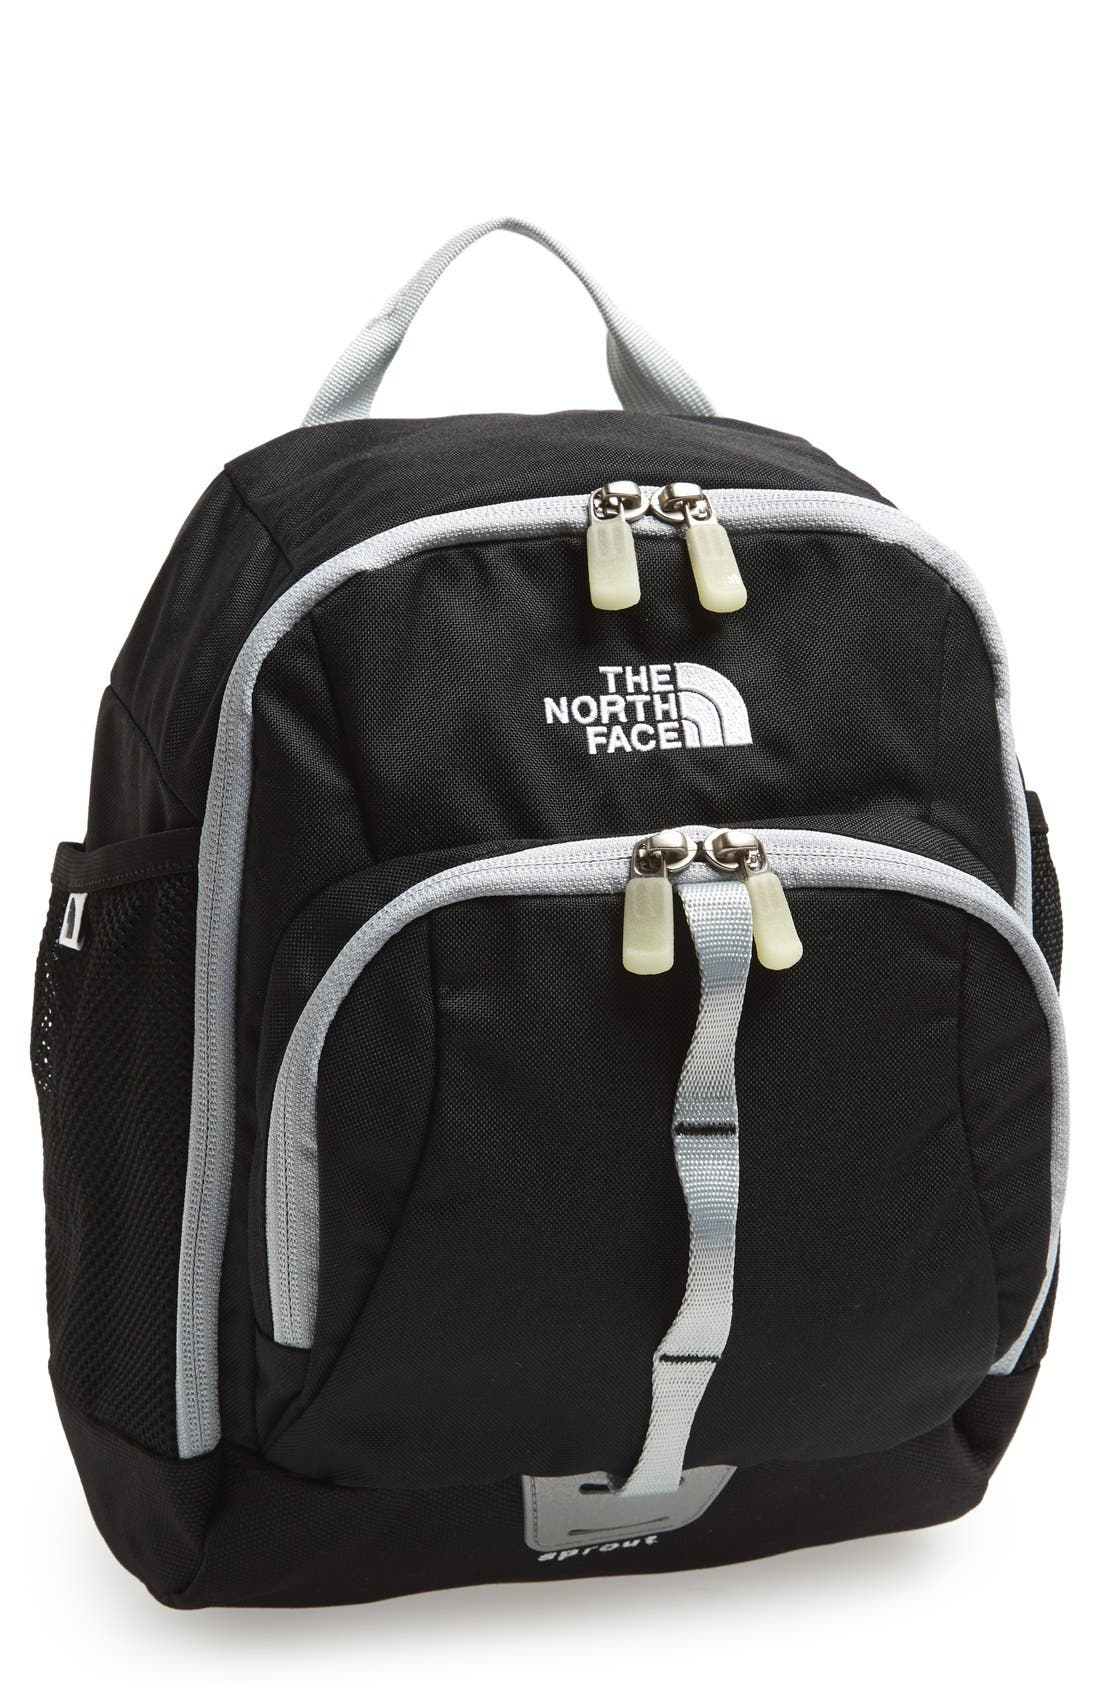 Alternate Image 1 Selected - The North Face 'Sprout' Backpack (Toddler Boys)